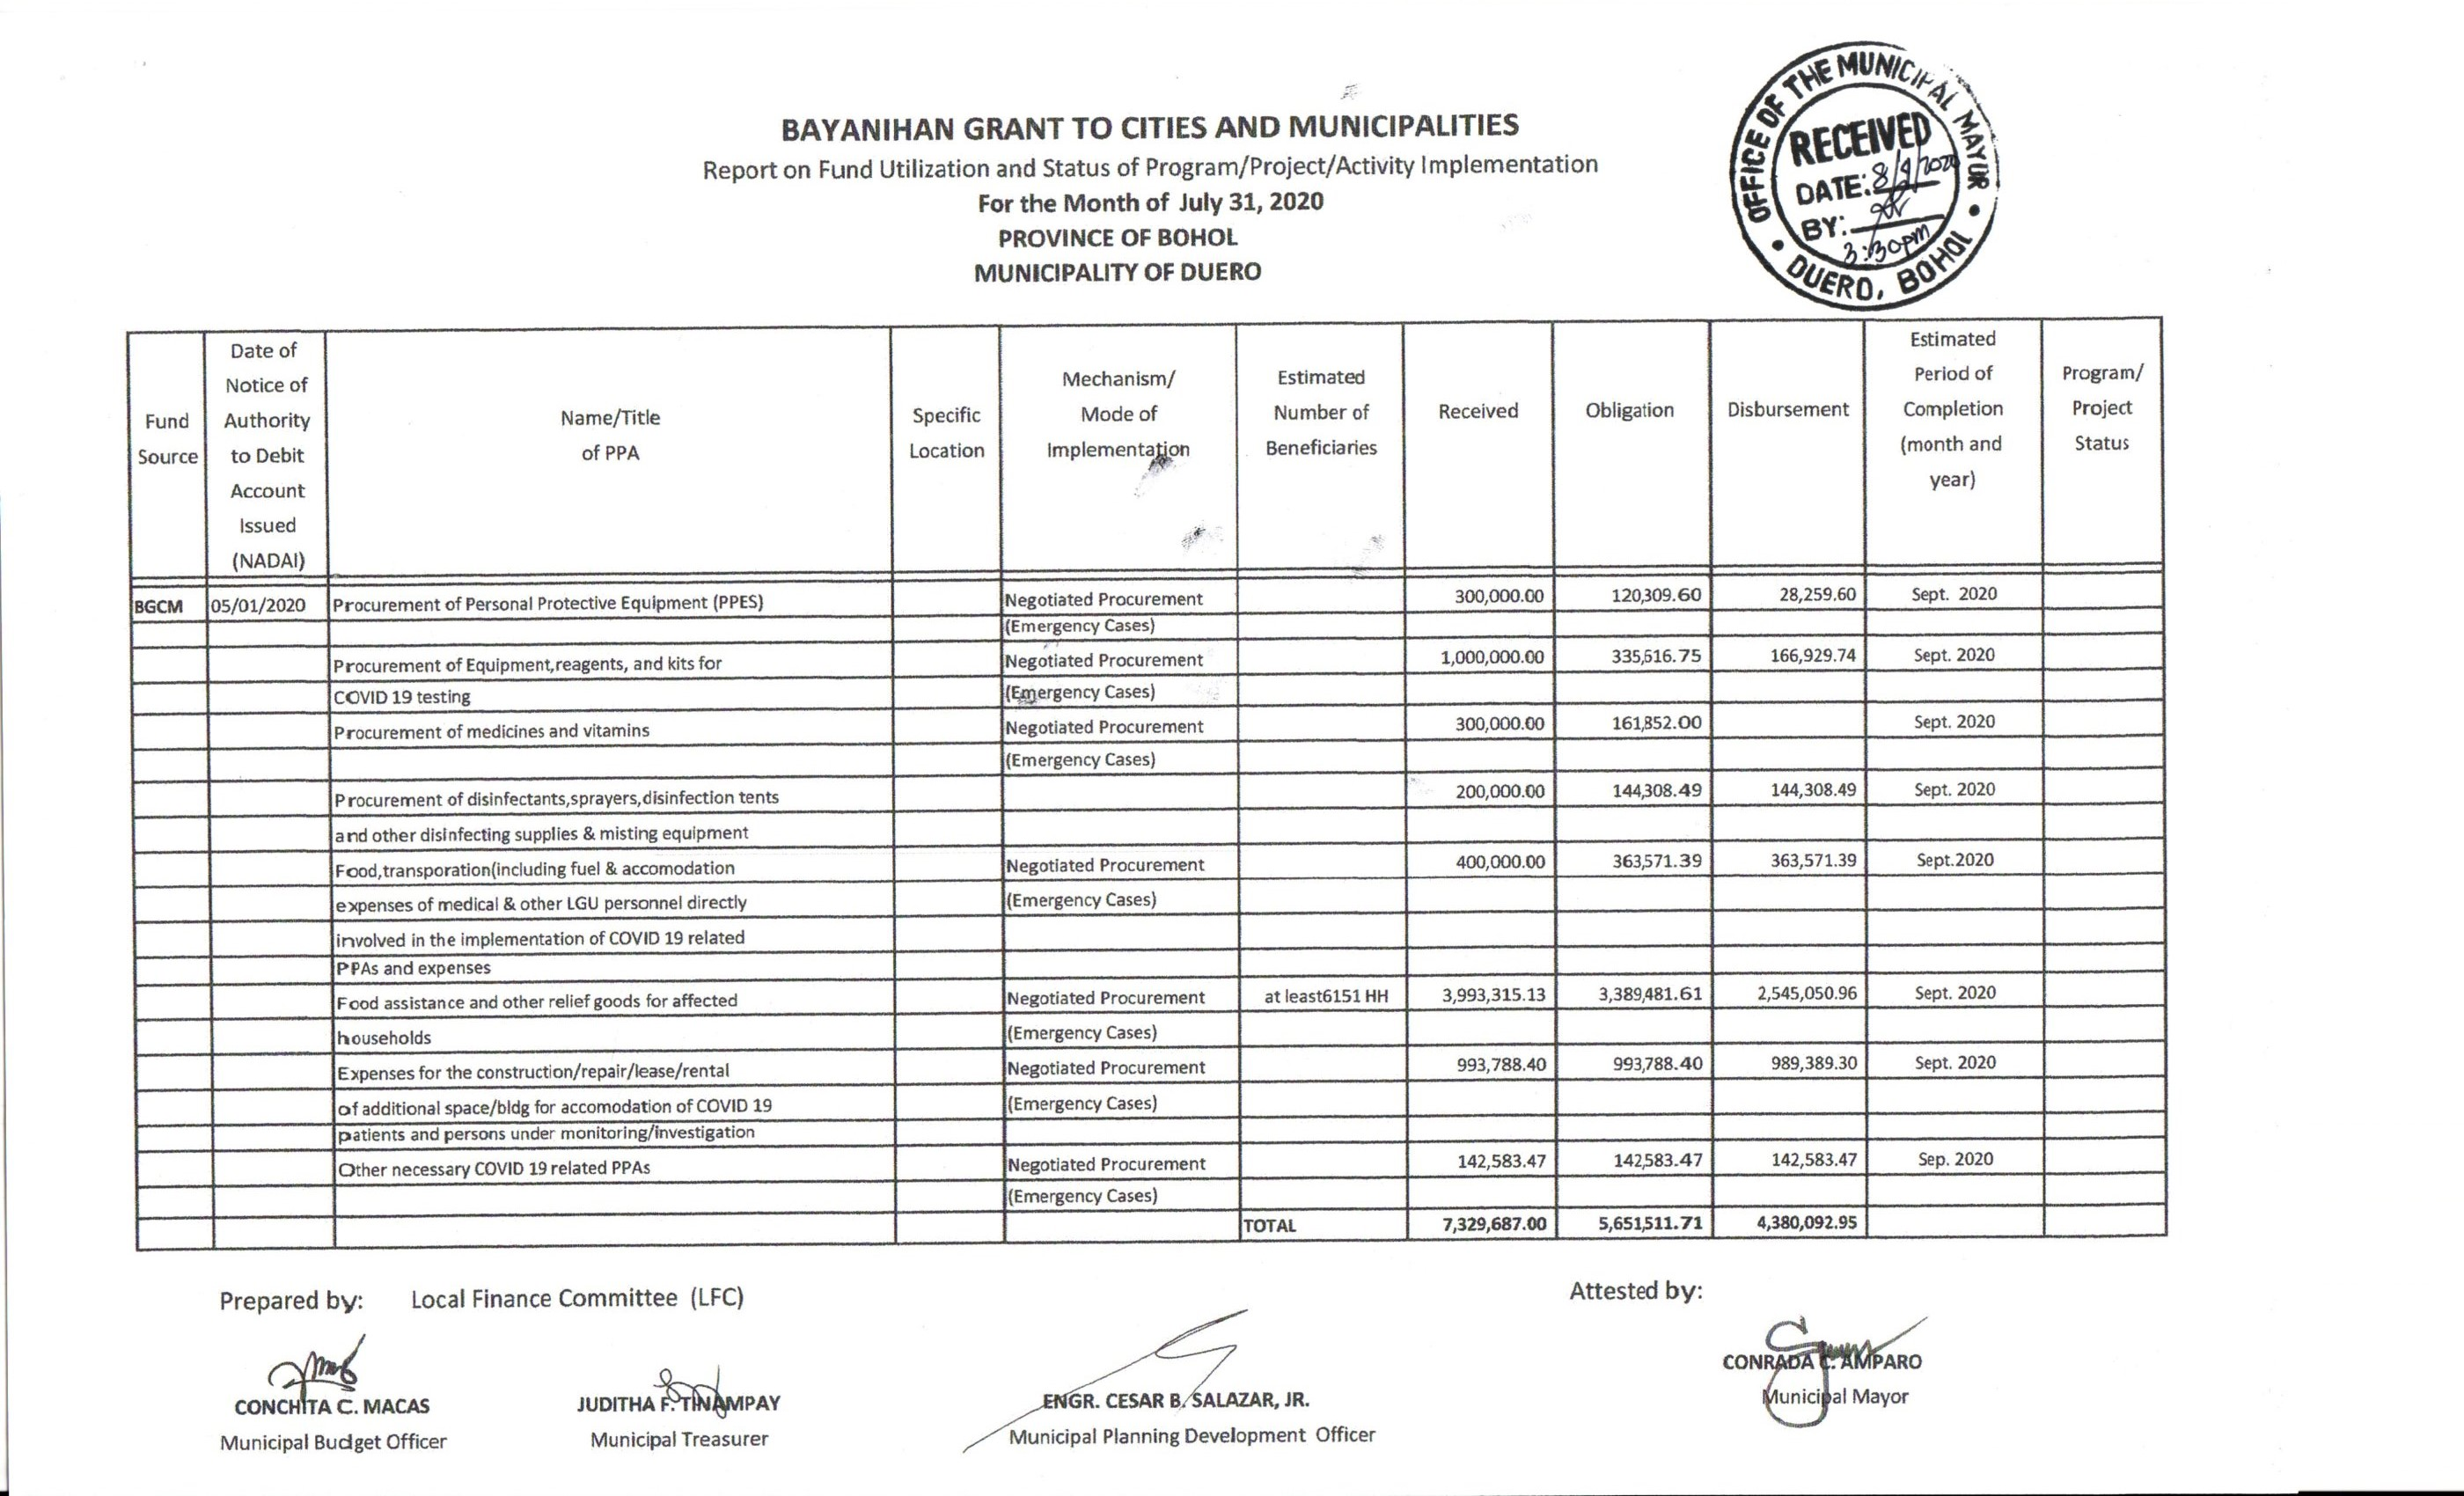 bayanihan-grant-to-cities-and-municipalities